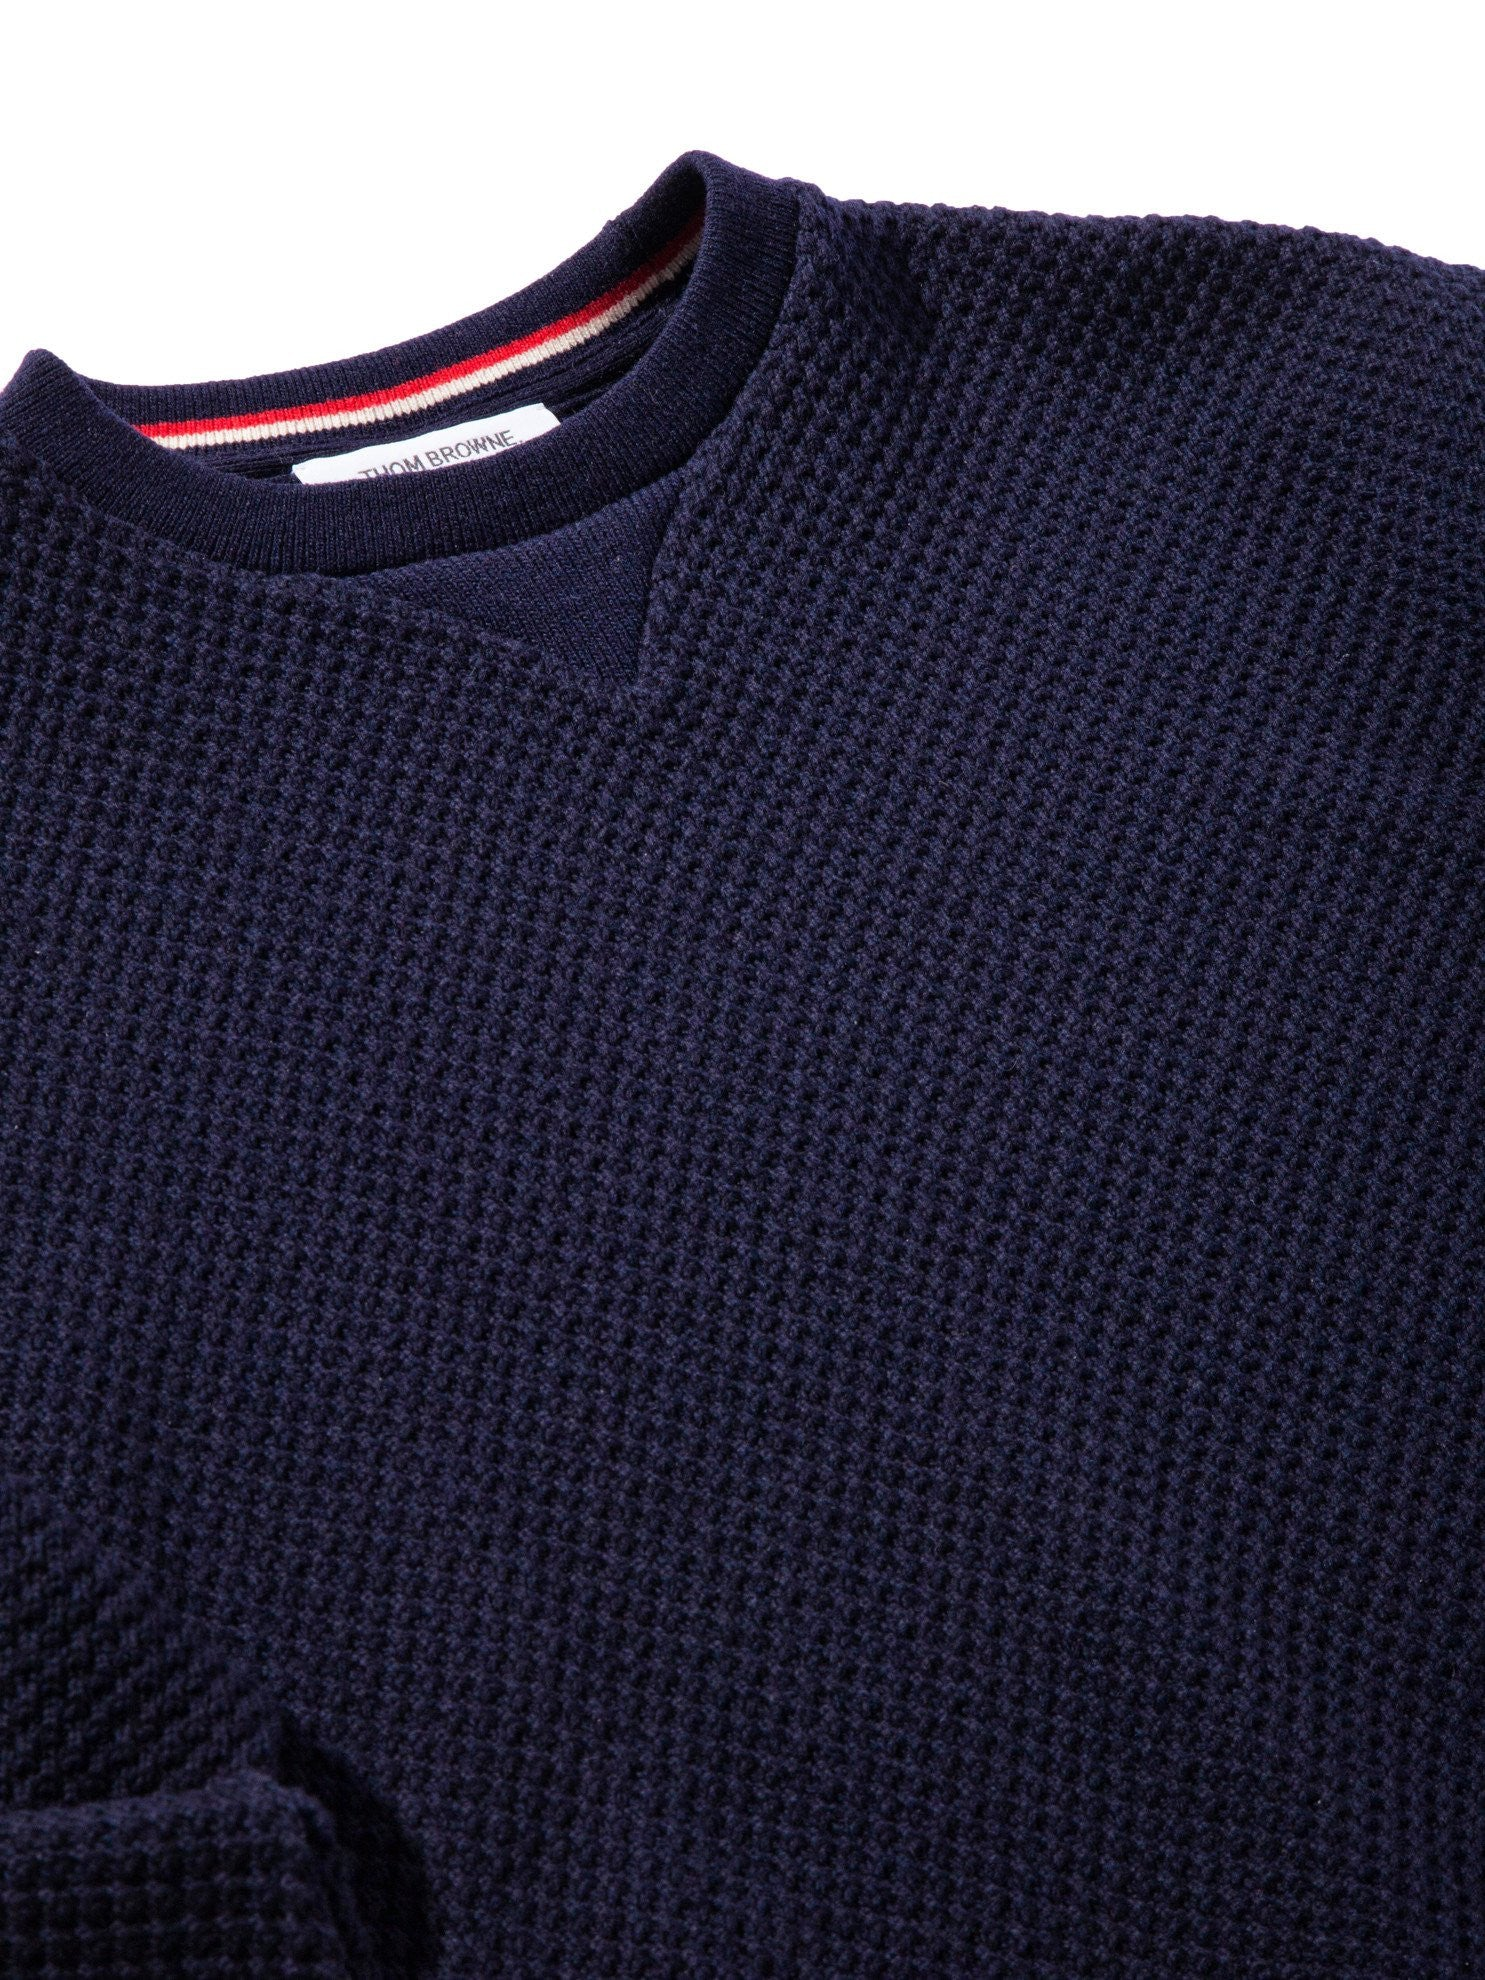 Navy Wide Shoulder Crew Neck Sweatshirt (Hand Embroidered 4 Bar Stripe In Chunky Pique) 9